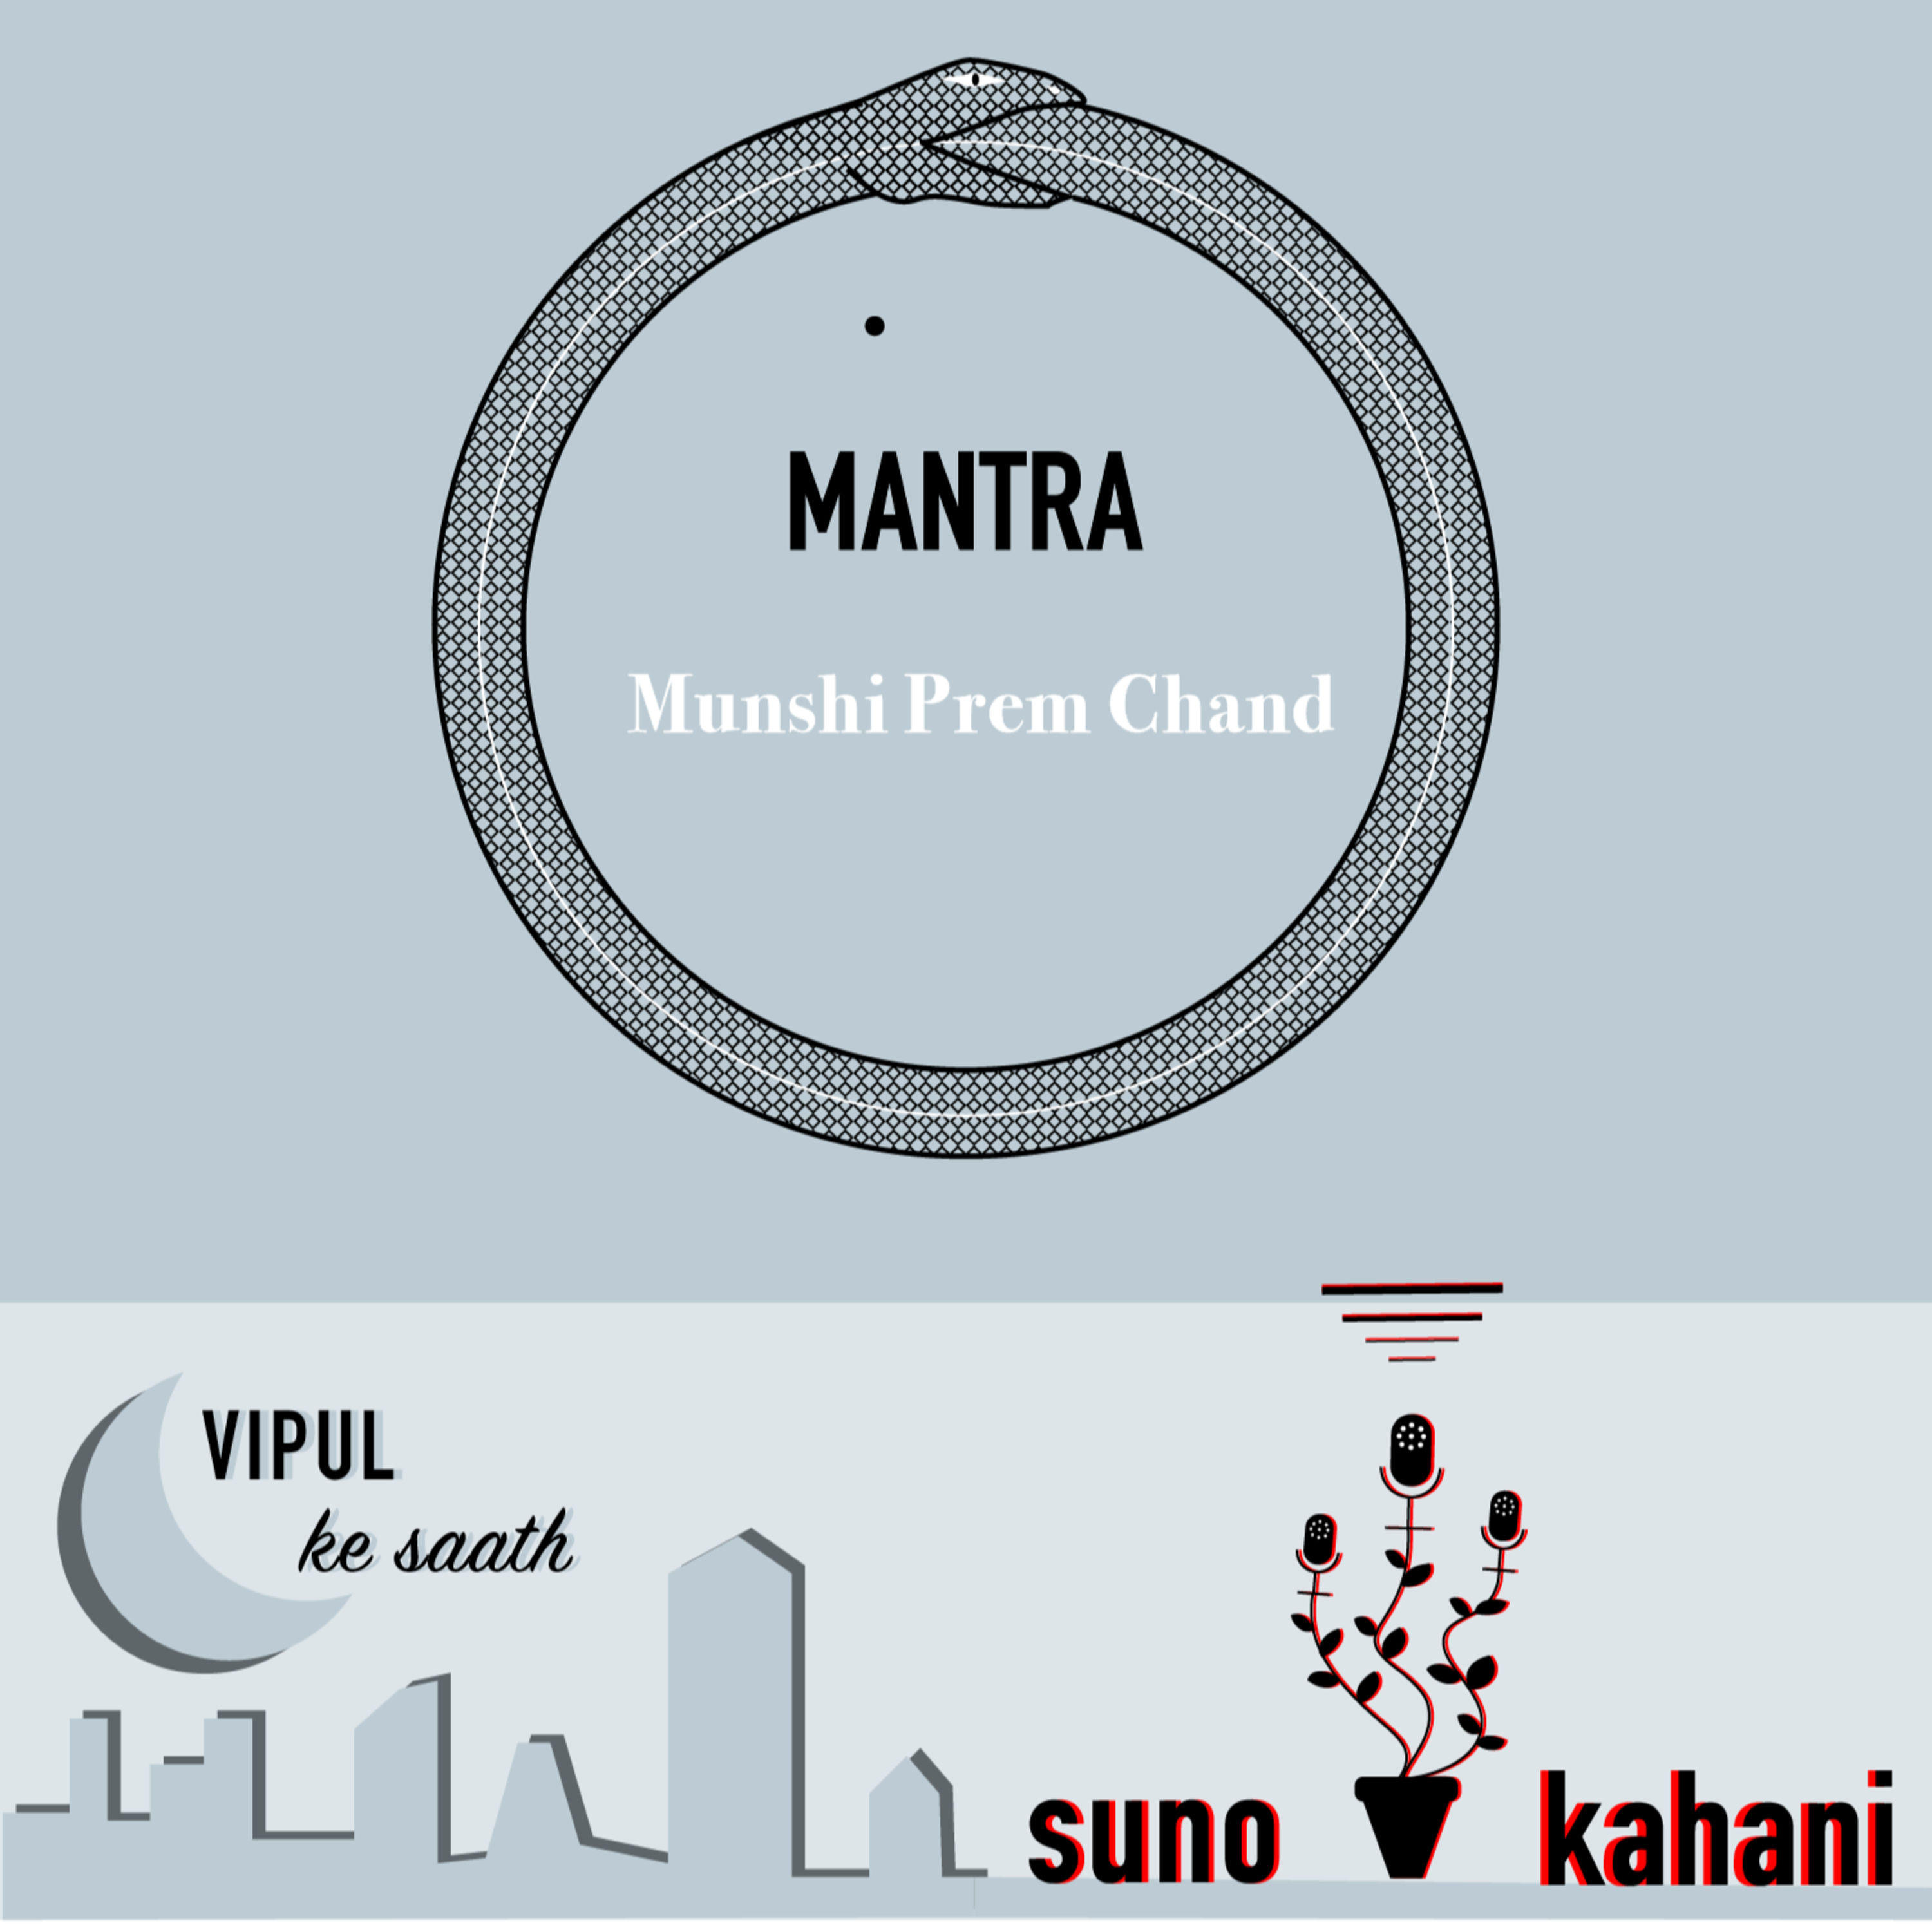 Ep 7 - Part 2 of 'Mantra' by Munshi Premchand